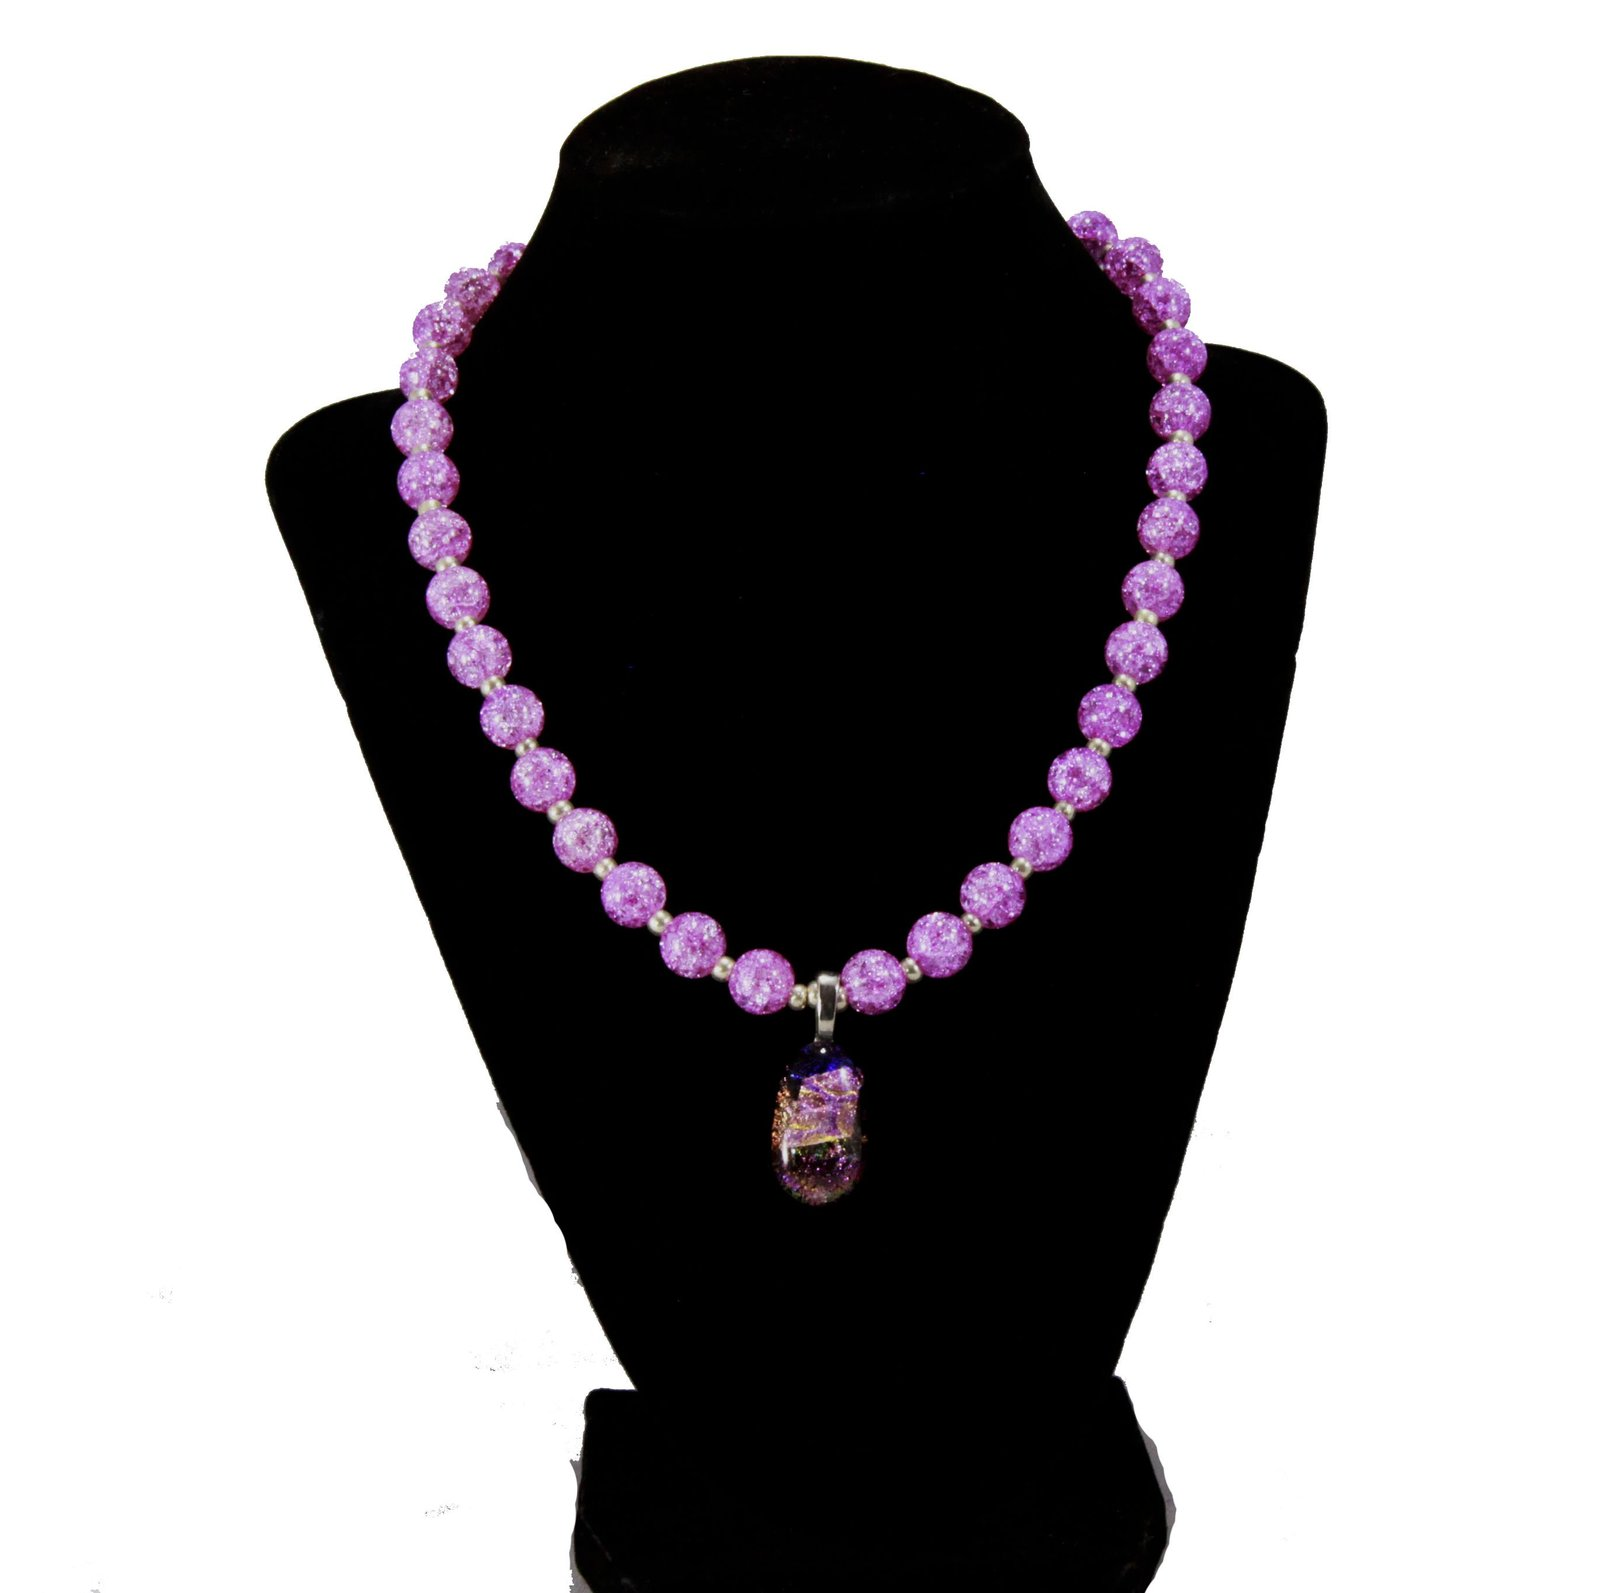 Pink Crackle Glass Necklace with Pendant - $30.00